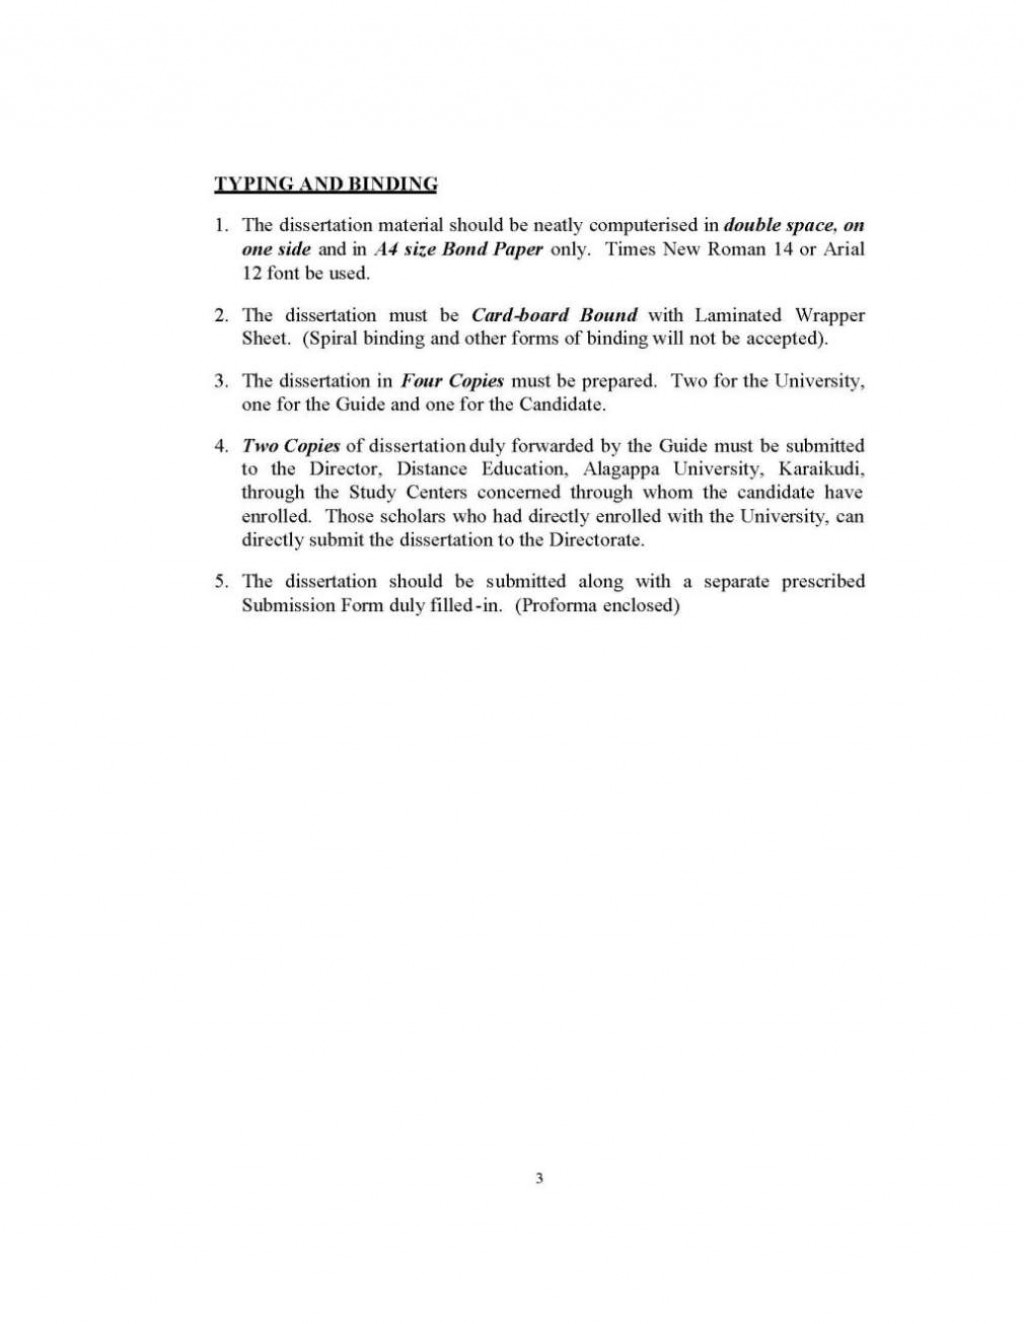 007 Essay Example Guideline For Format Of The Dissertation Report Mphil Political Dreaded Crossword Puzzle Clue Large